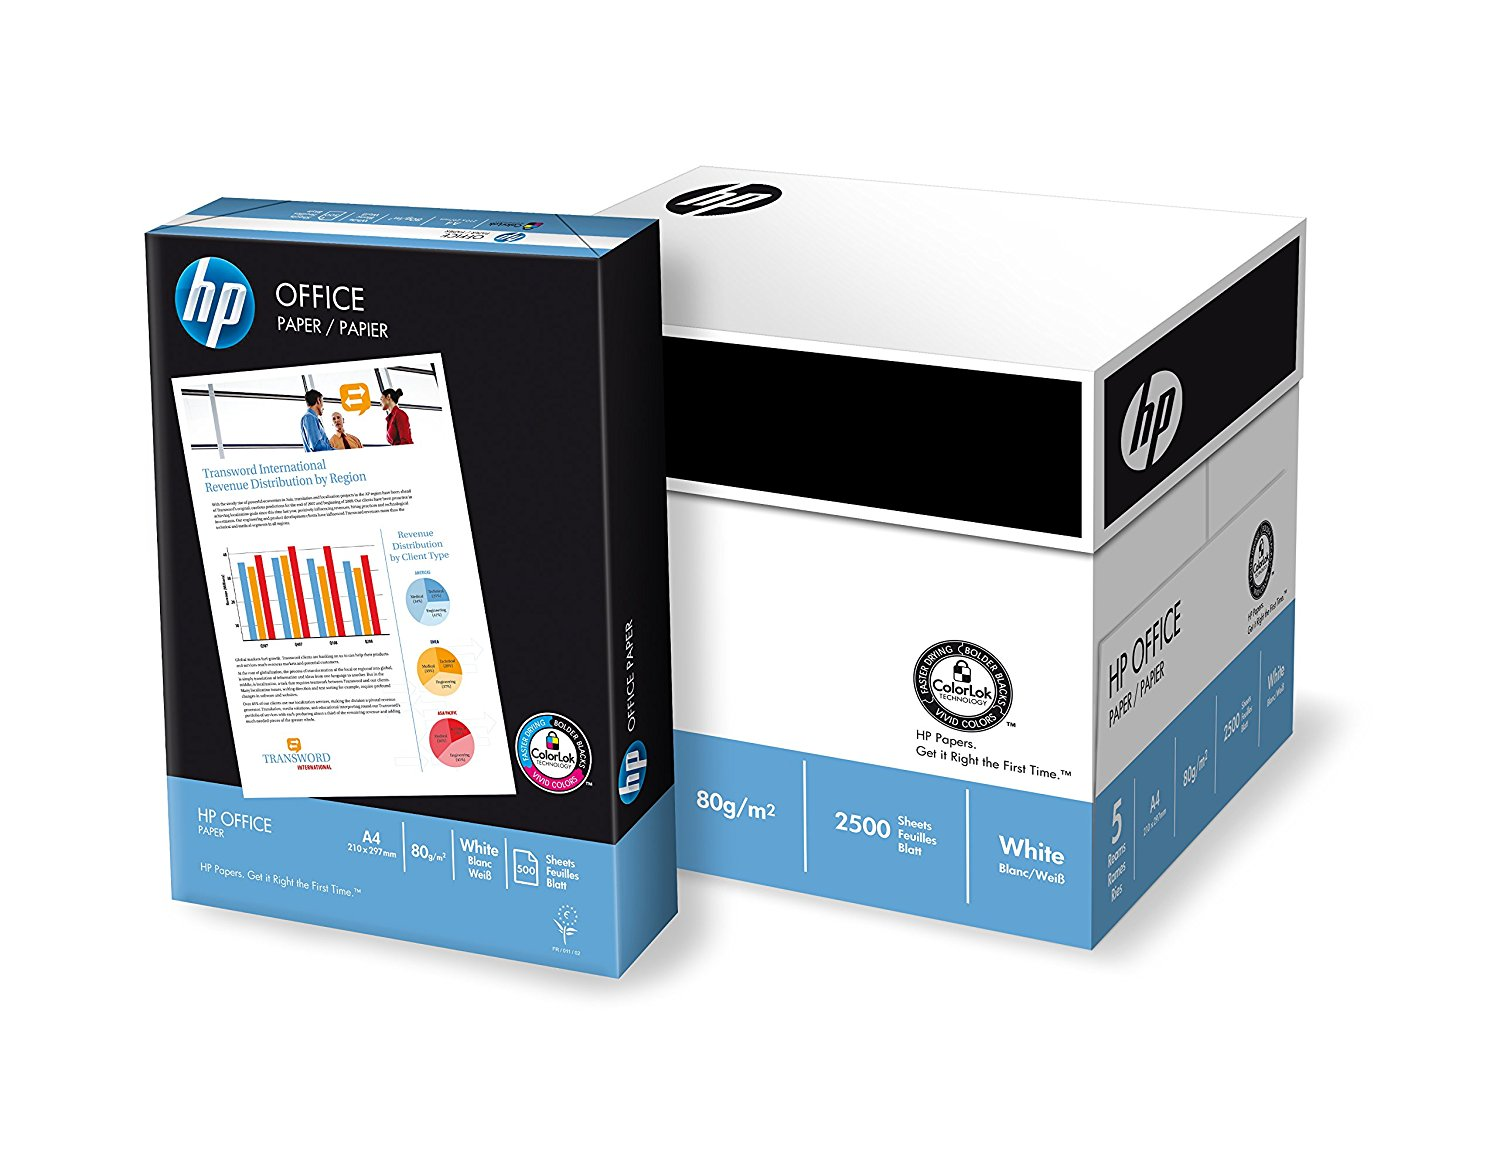 HP LETTER PAPER 80g 5X